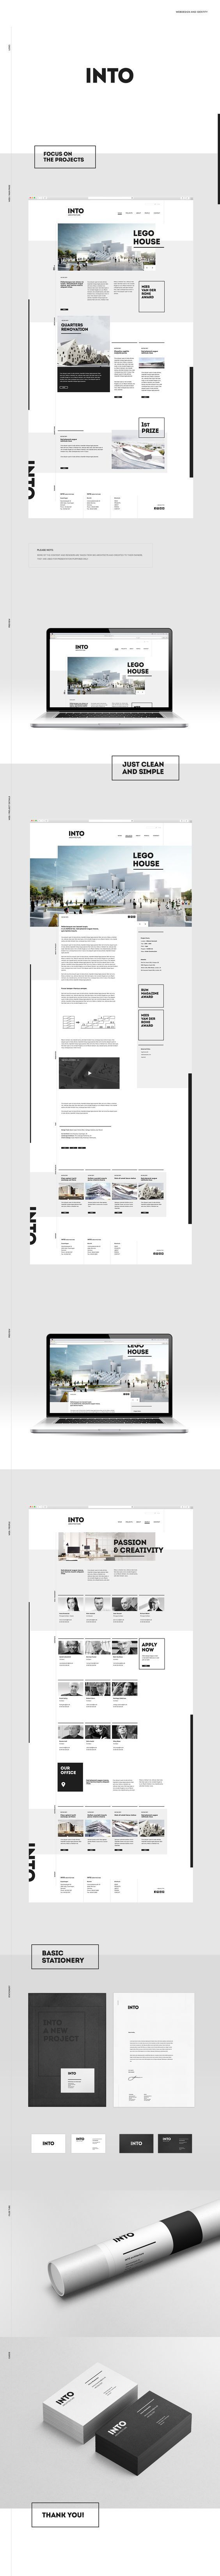 projects website layout #webdesign #web #inspiration #white #theme #concept